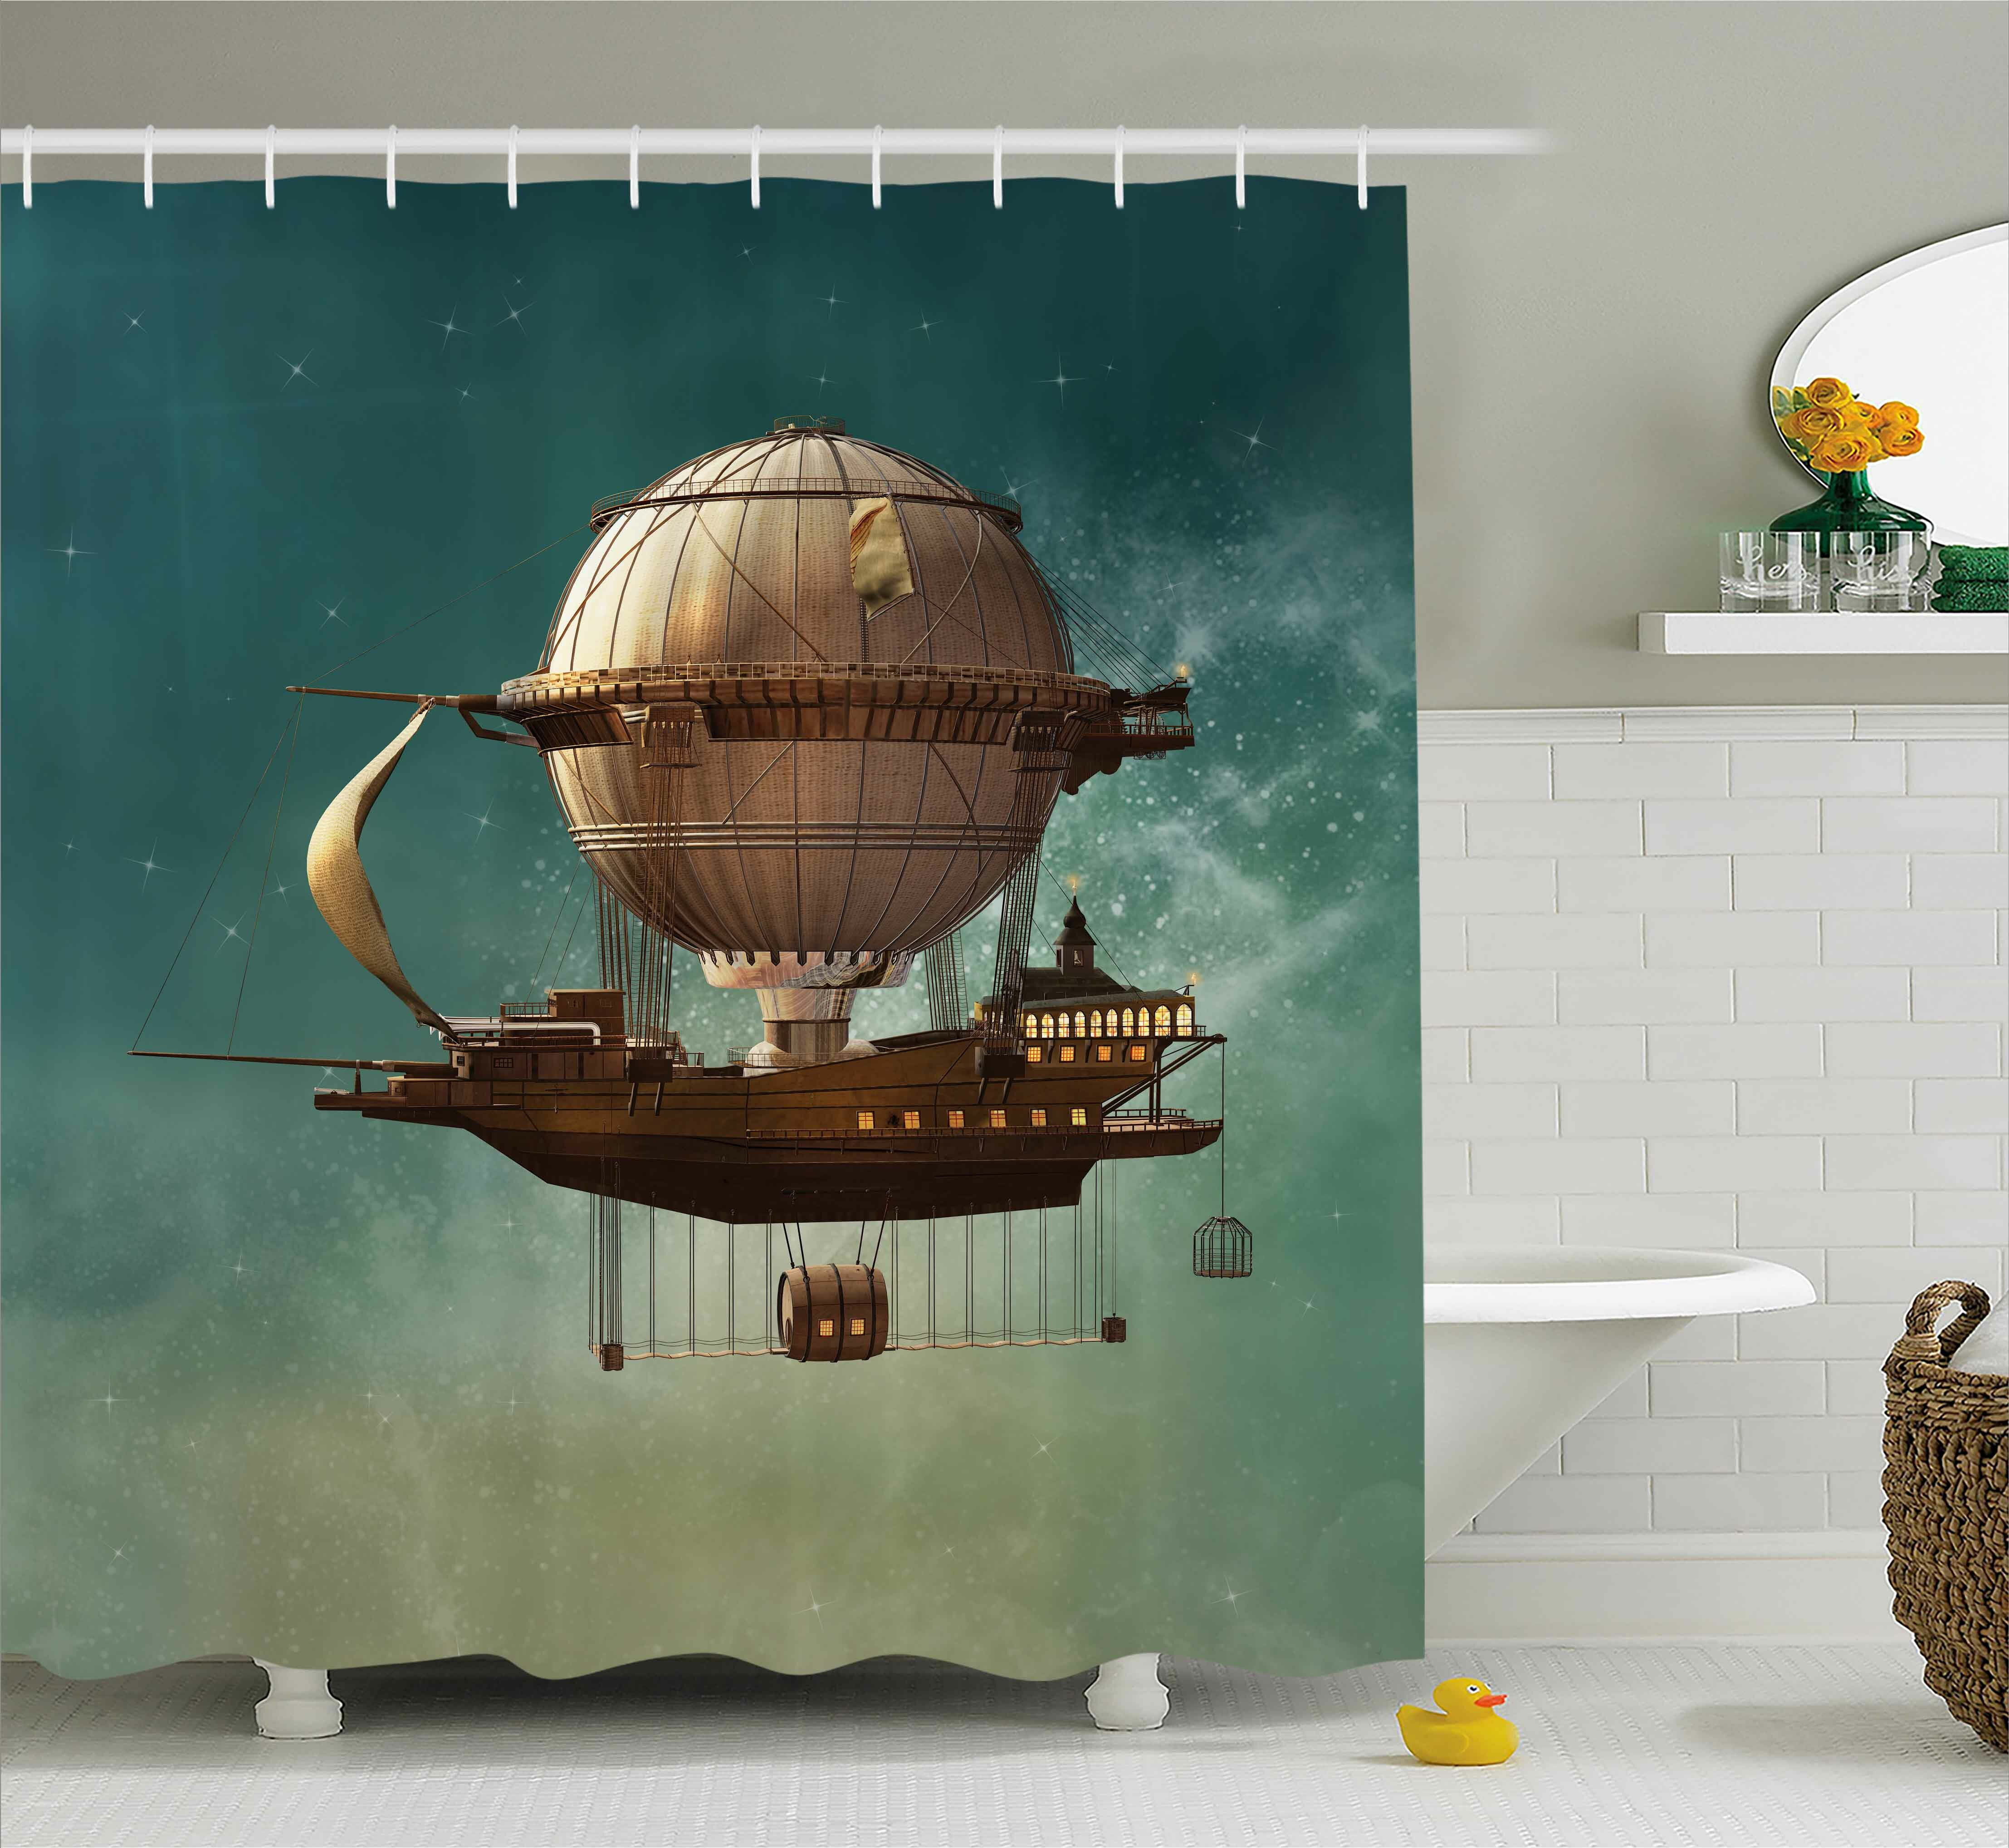 Ebern Designs Maureen Fantasy Surreal Sky Scenery With Steampunk Airship Fairy Sci Fi Stardust Space Image Shower Curtain